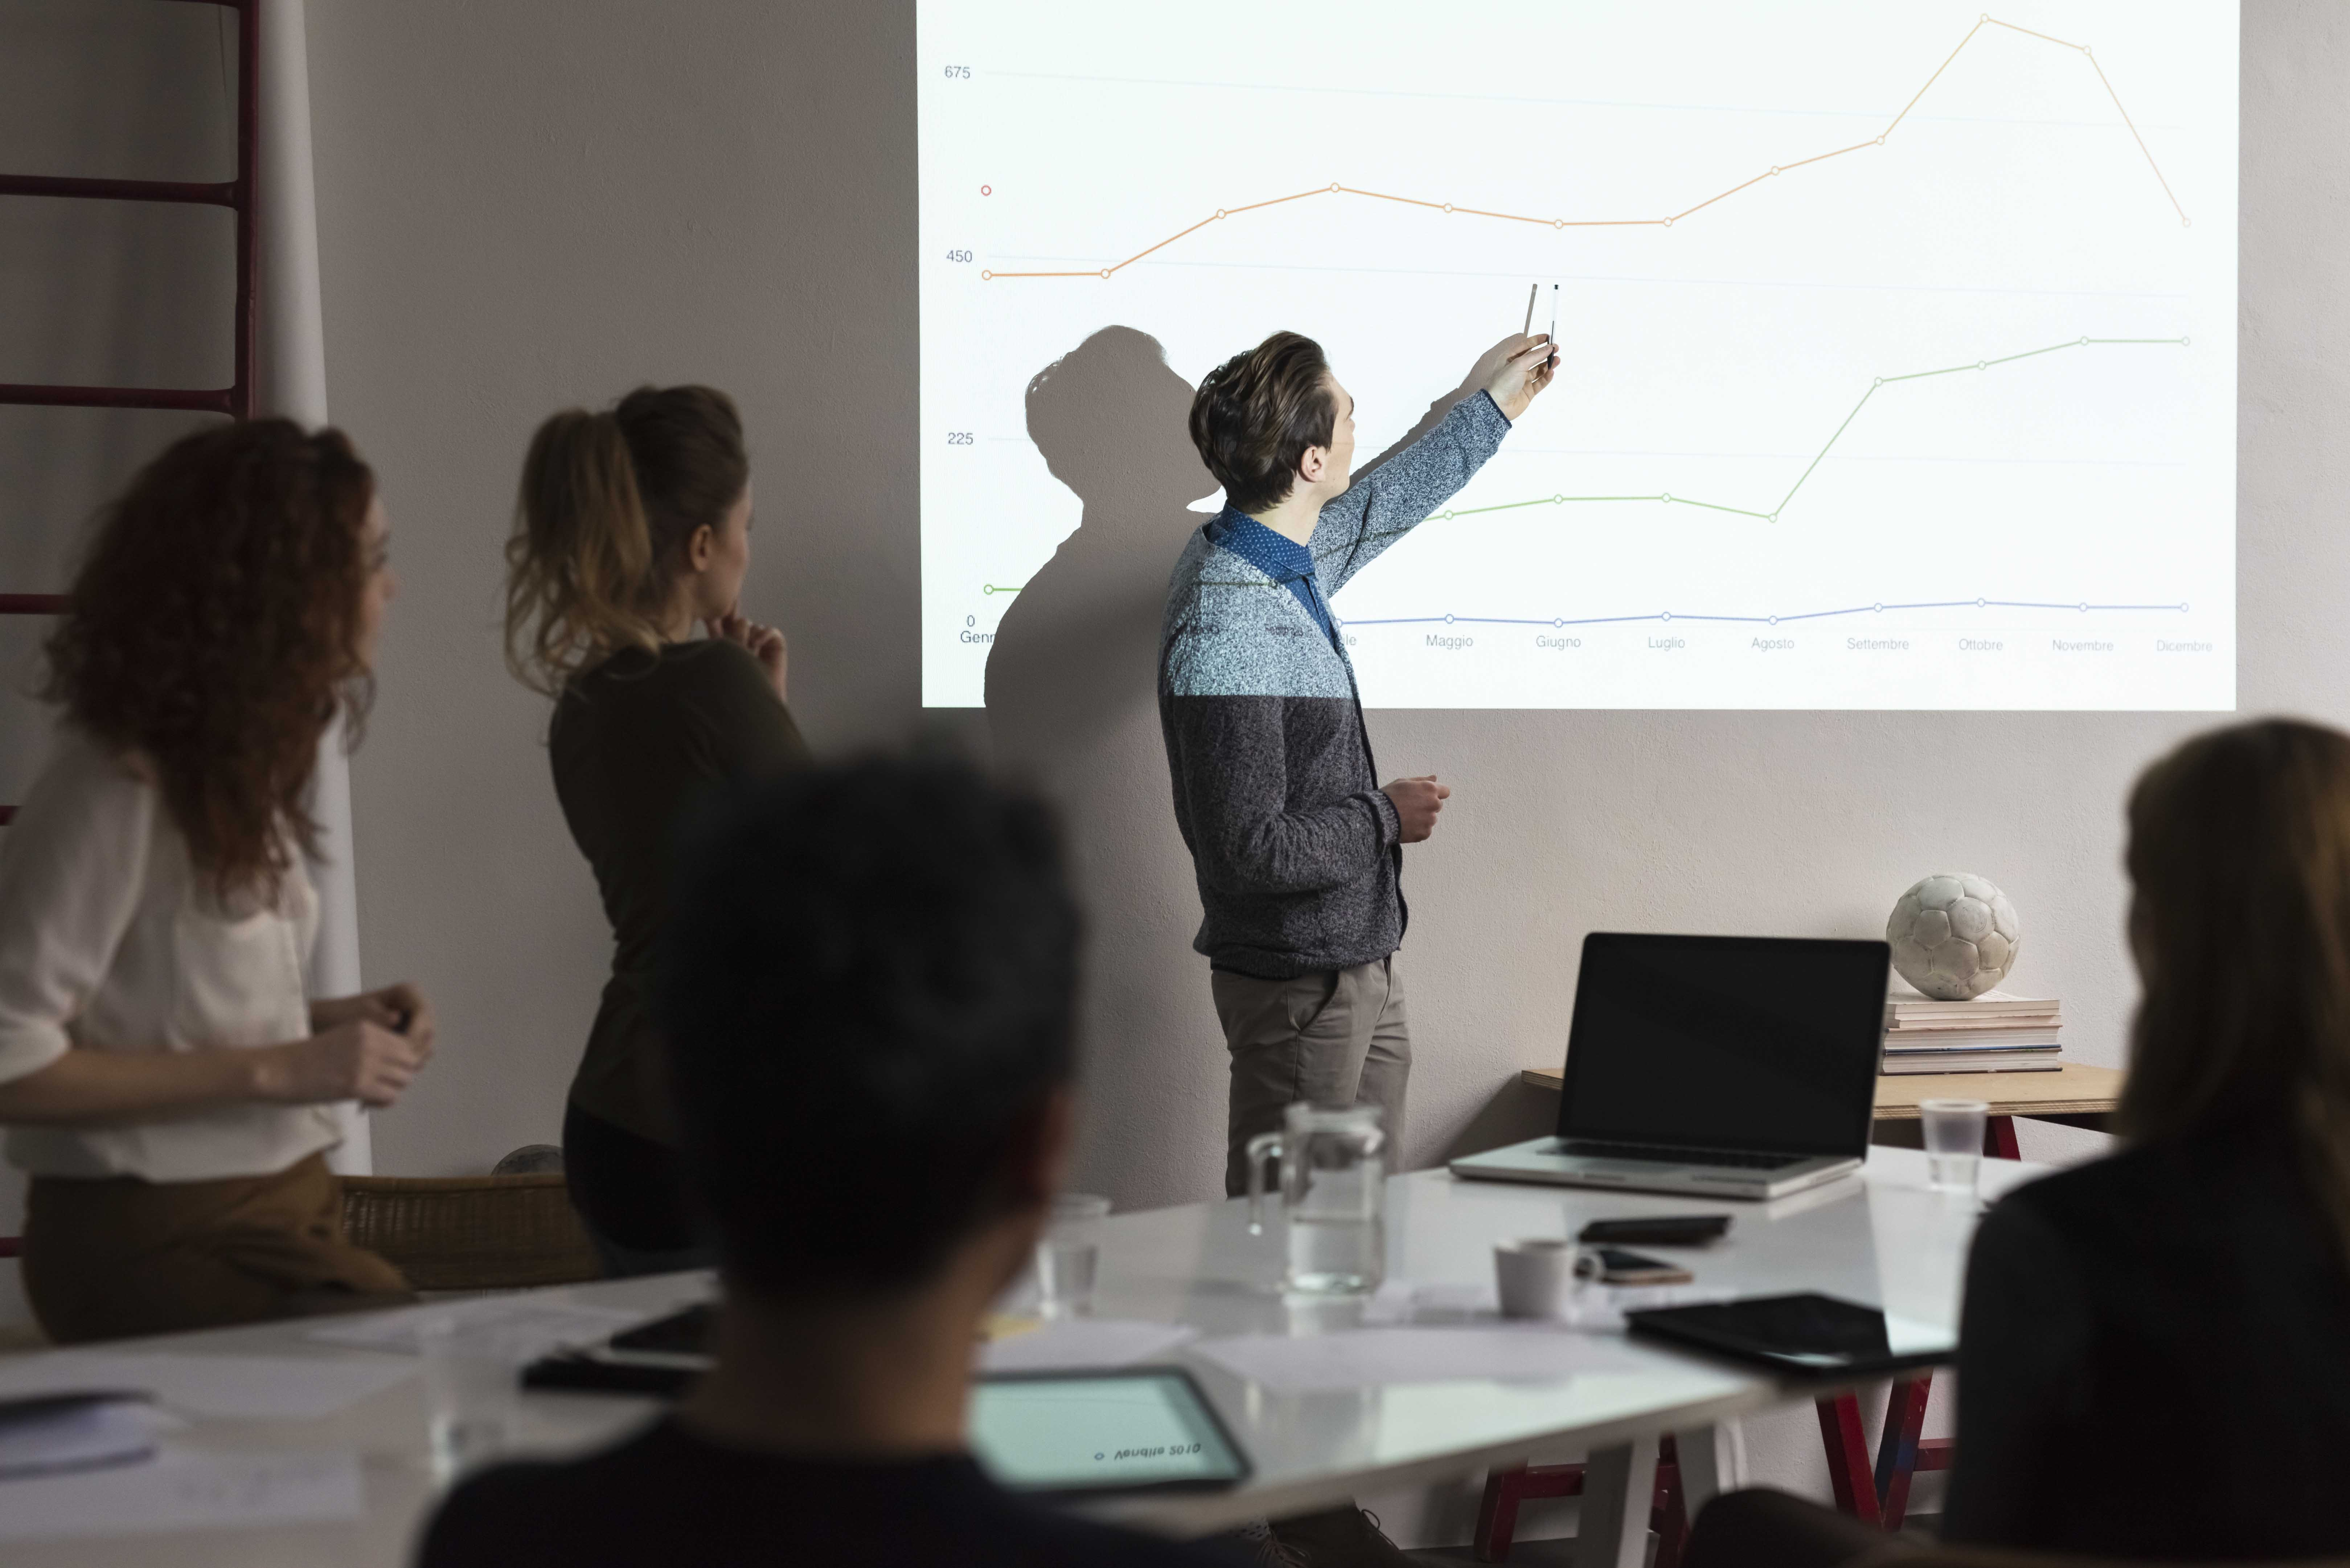 Presentation During A Business Meeting In Office